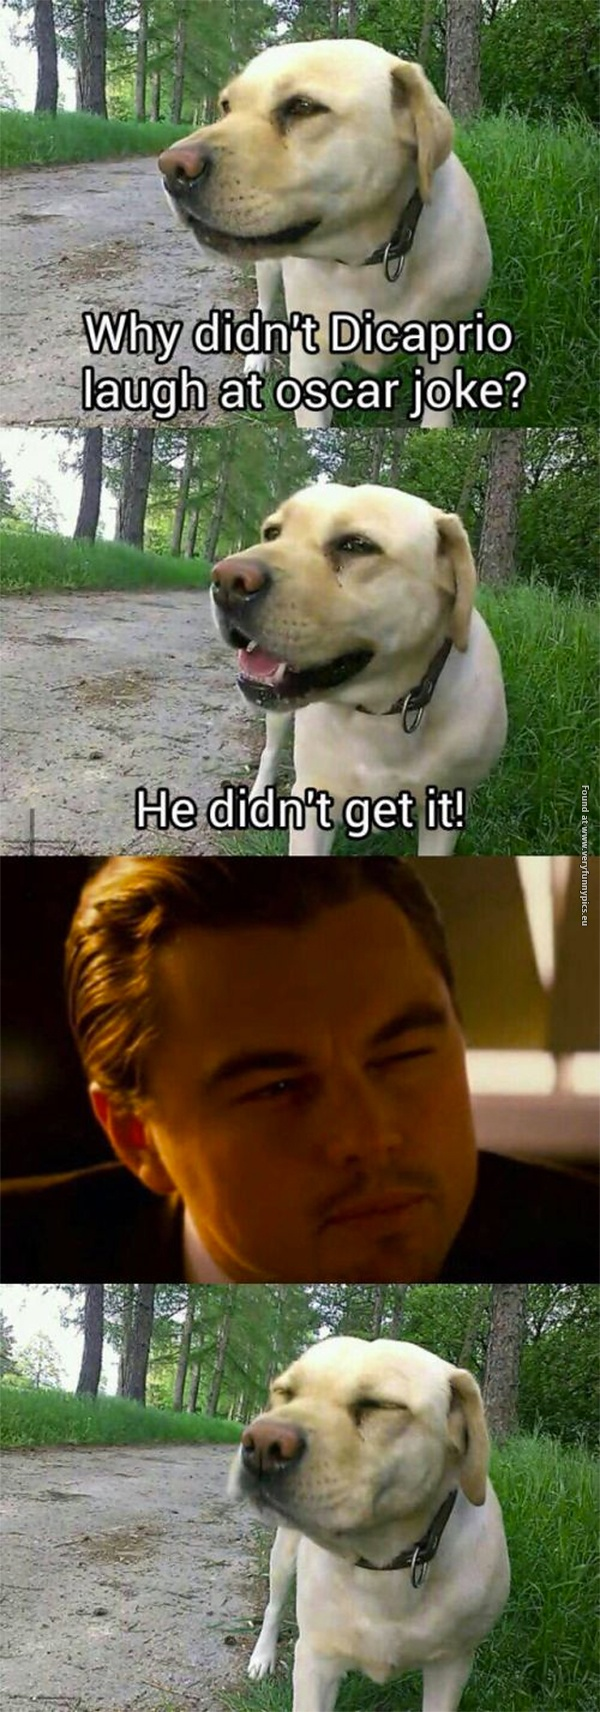 Just another DiCaprio Oscar joke